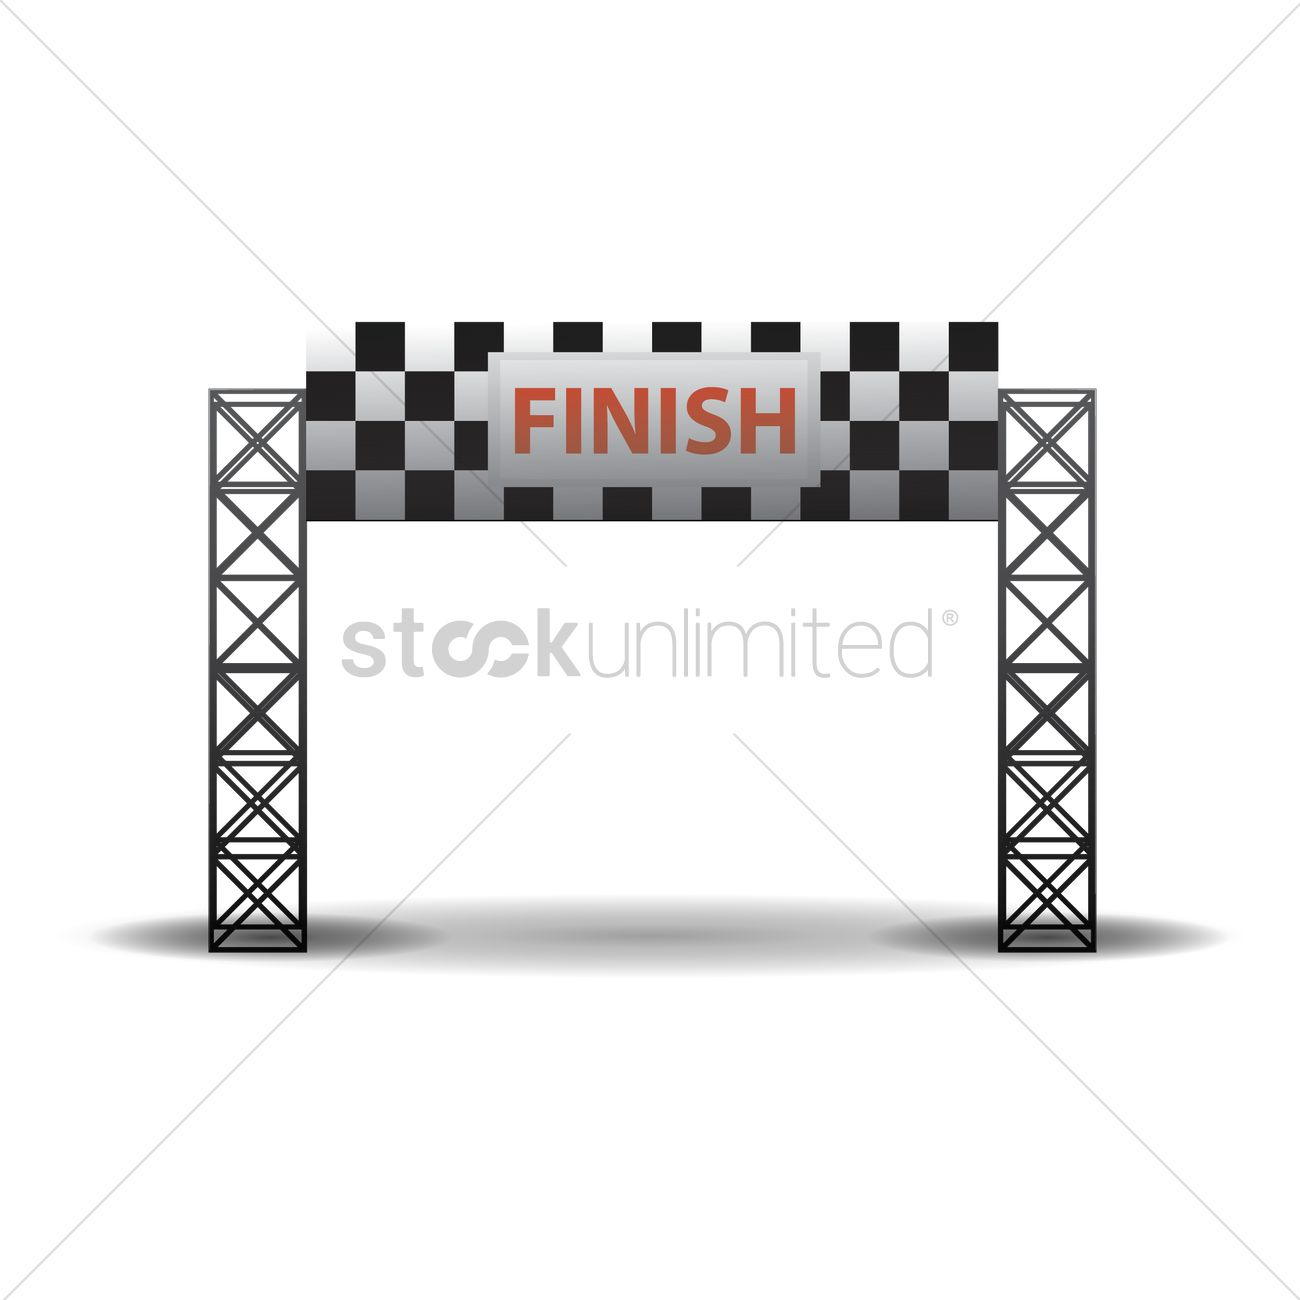 Finish line banner Vector Image - 1432187 | StockUnlimited